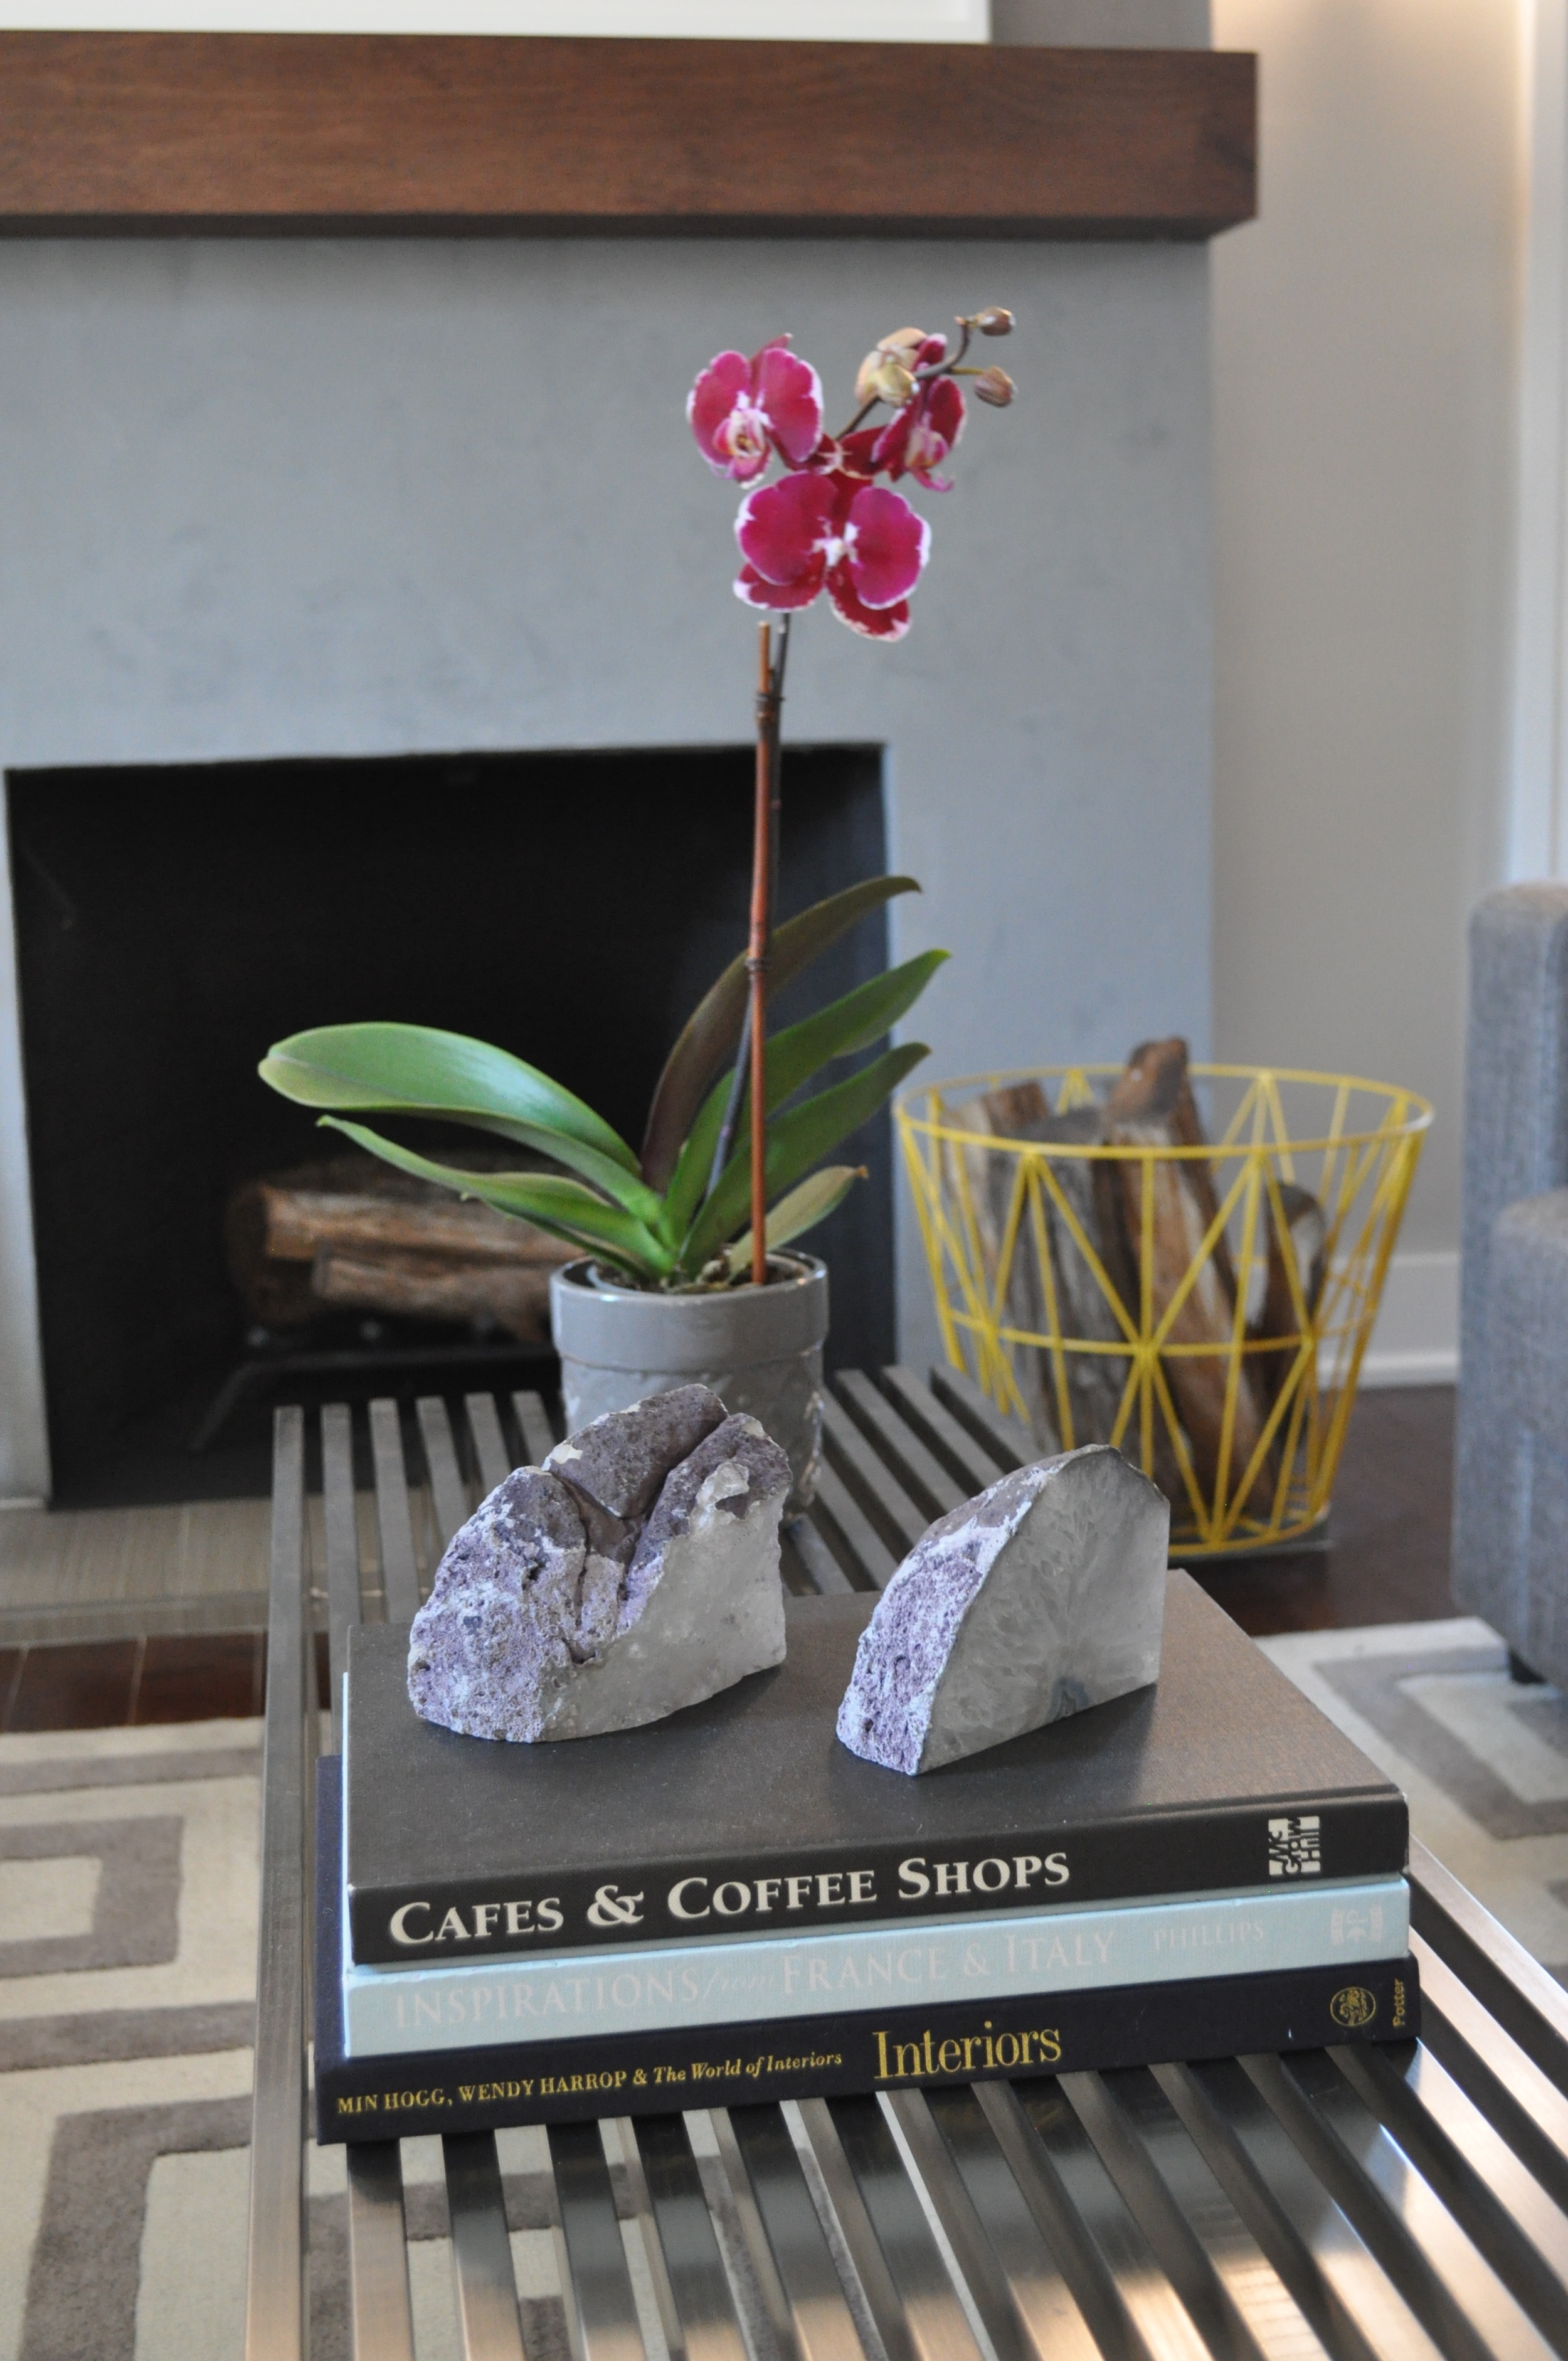 321_CloseUp_SneakPeak_Coffee Table_Wire Basket - 1.jpg